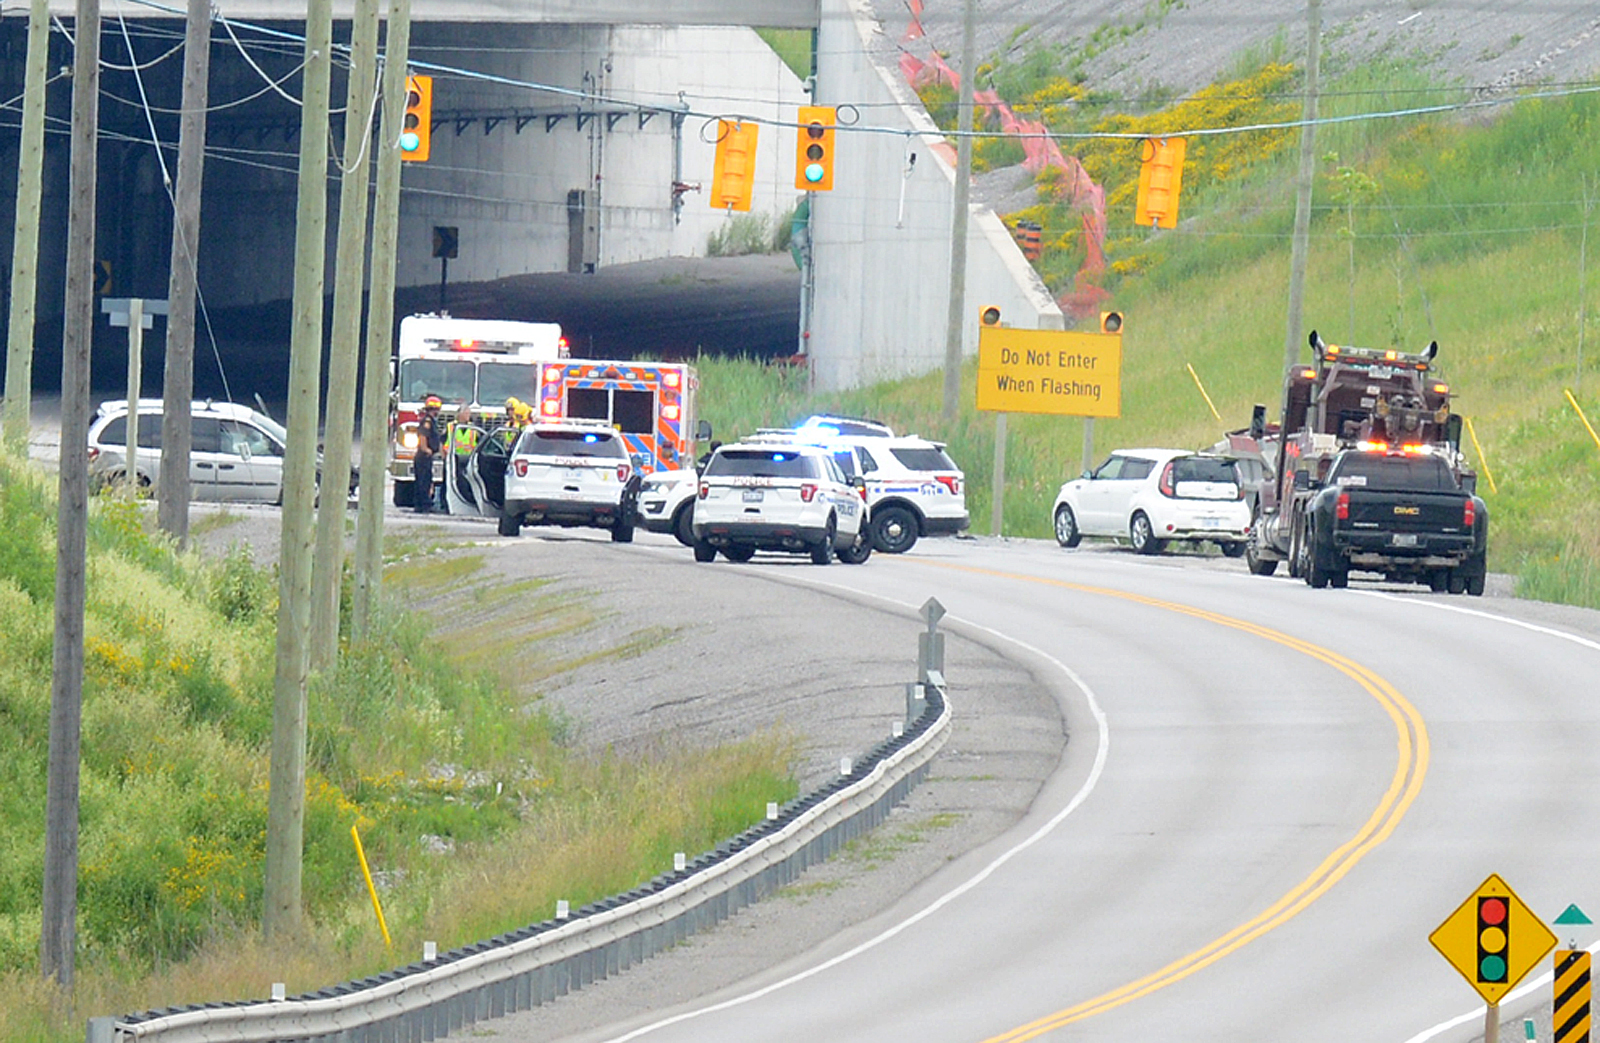 Two hurt in serious collision crash at intersection at